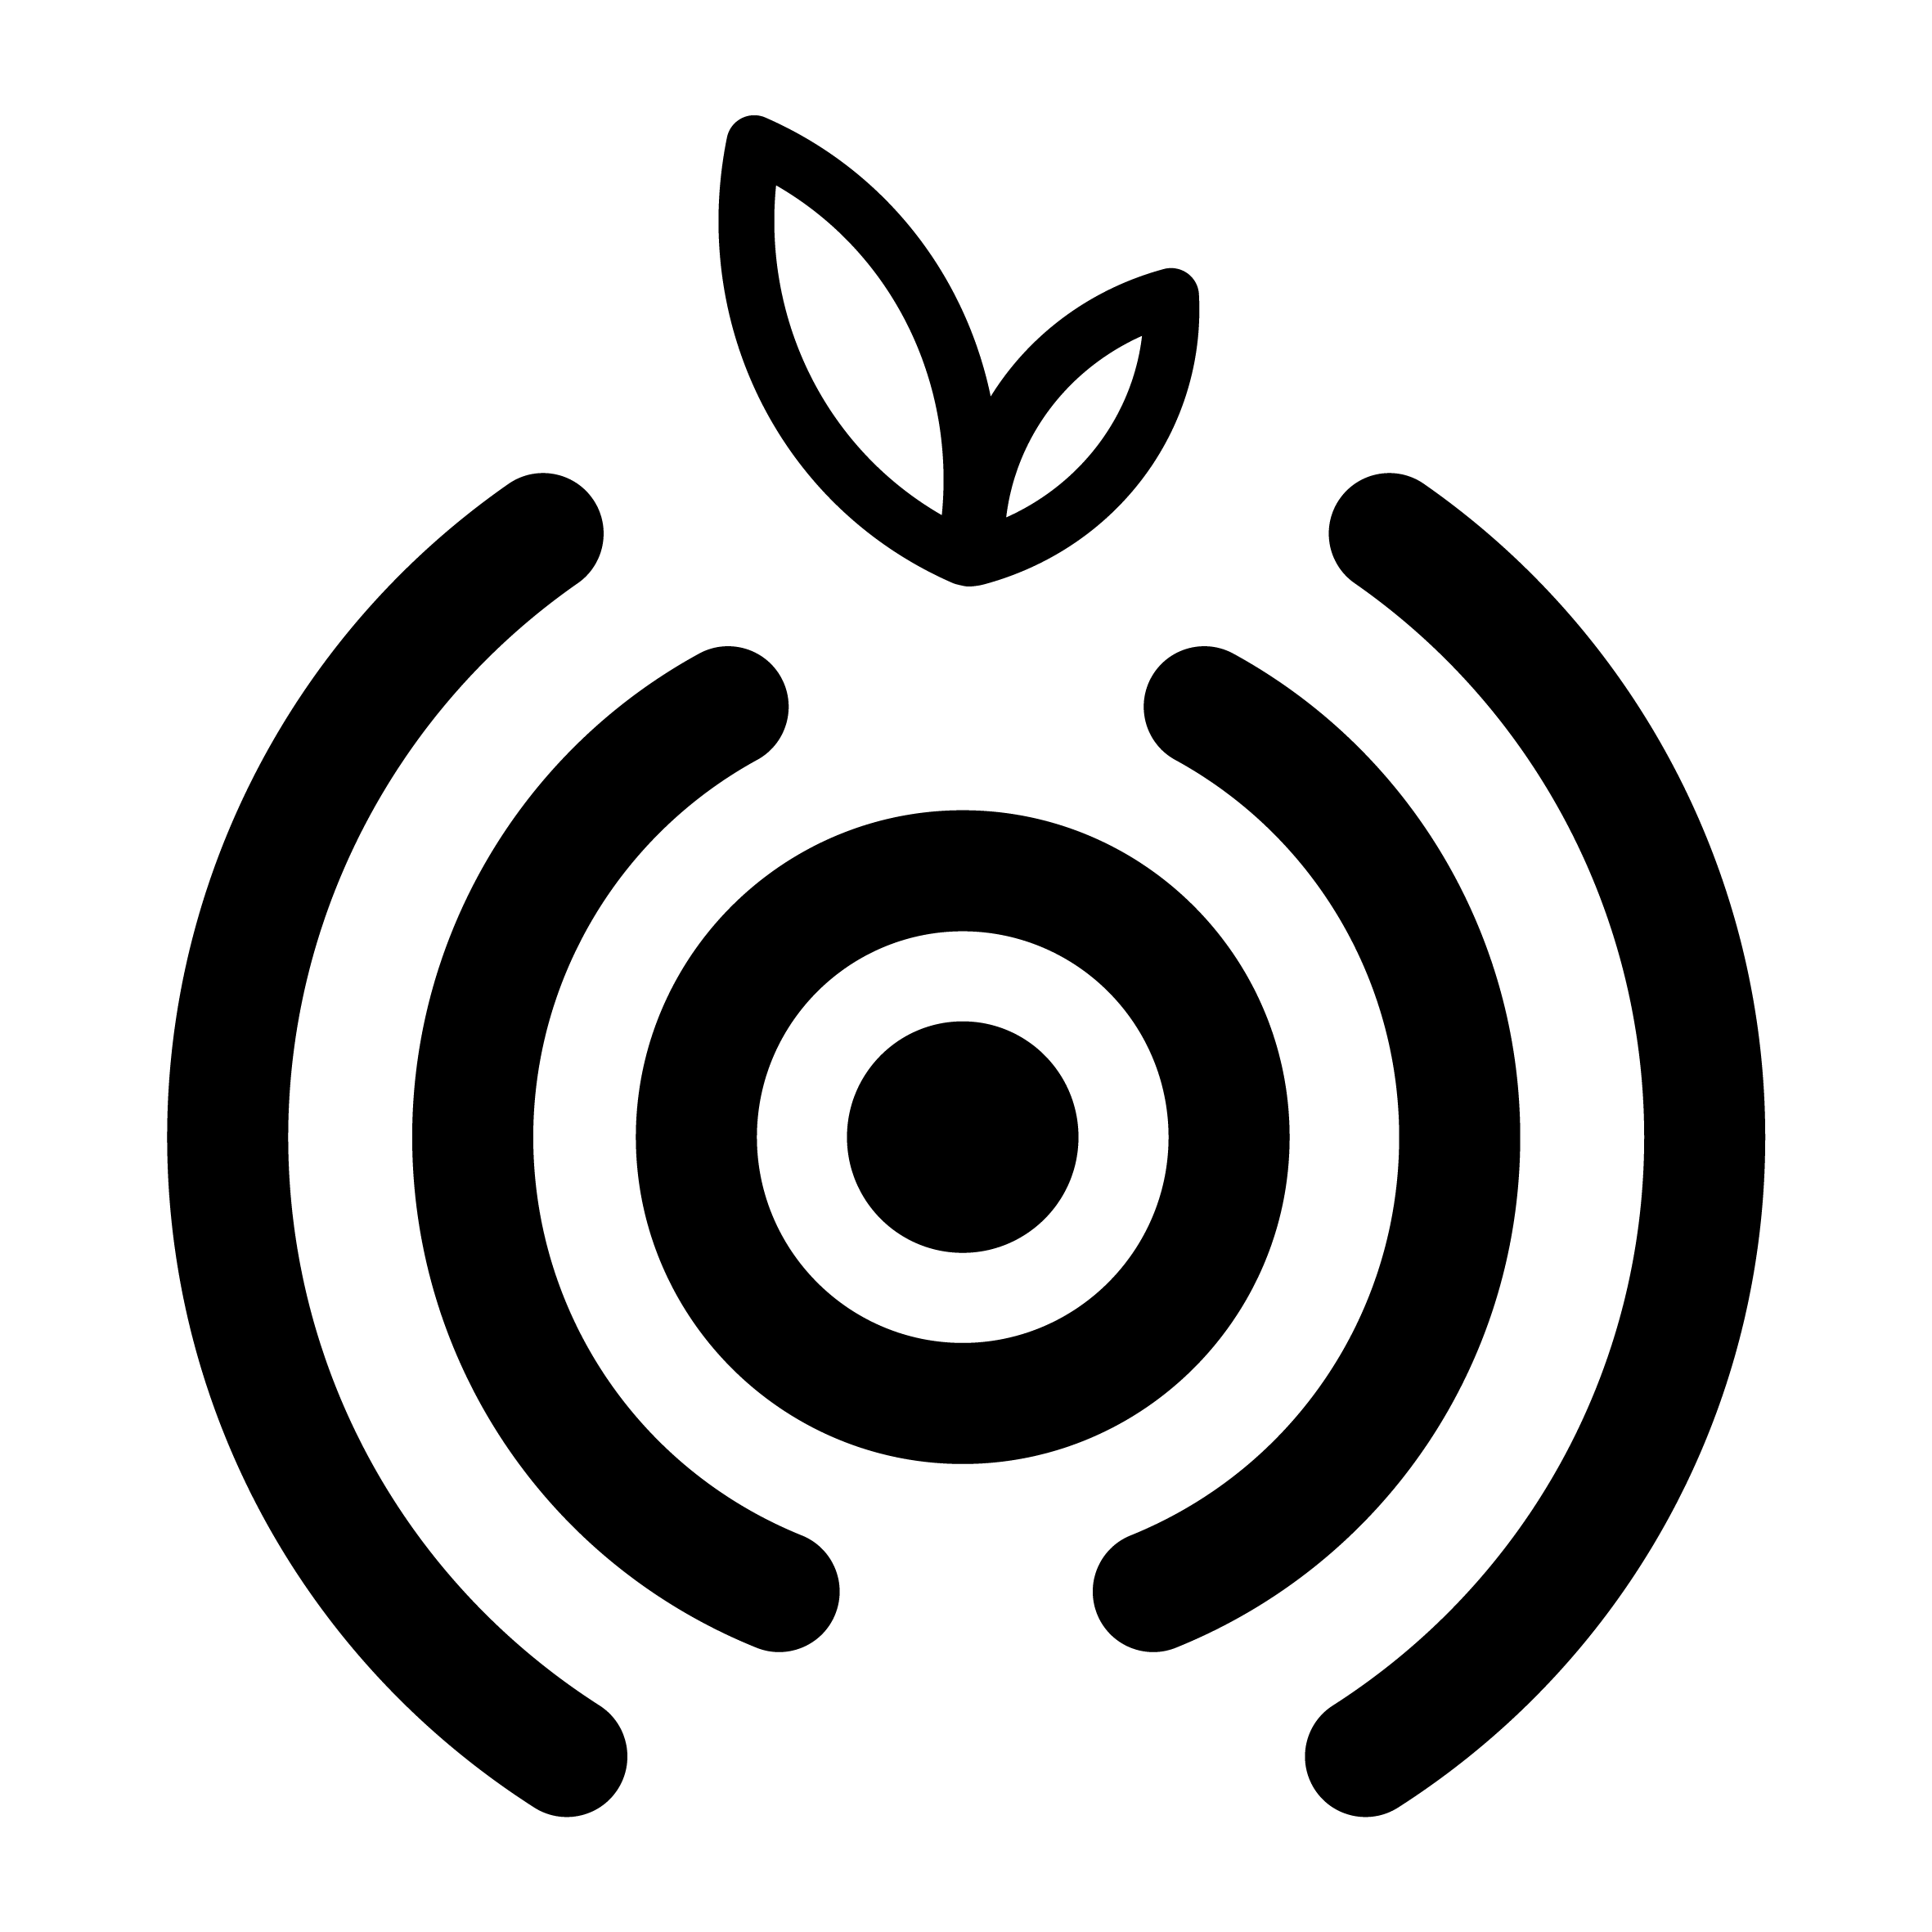 logo/PNG/icon_BWr-01.png